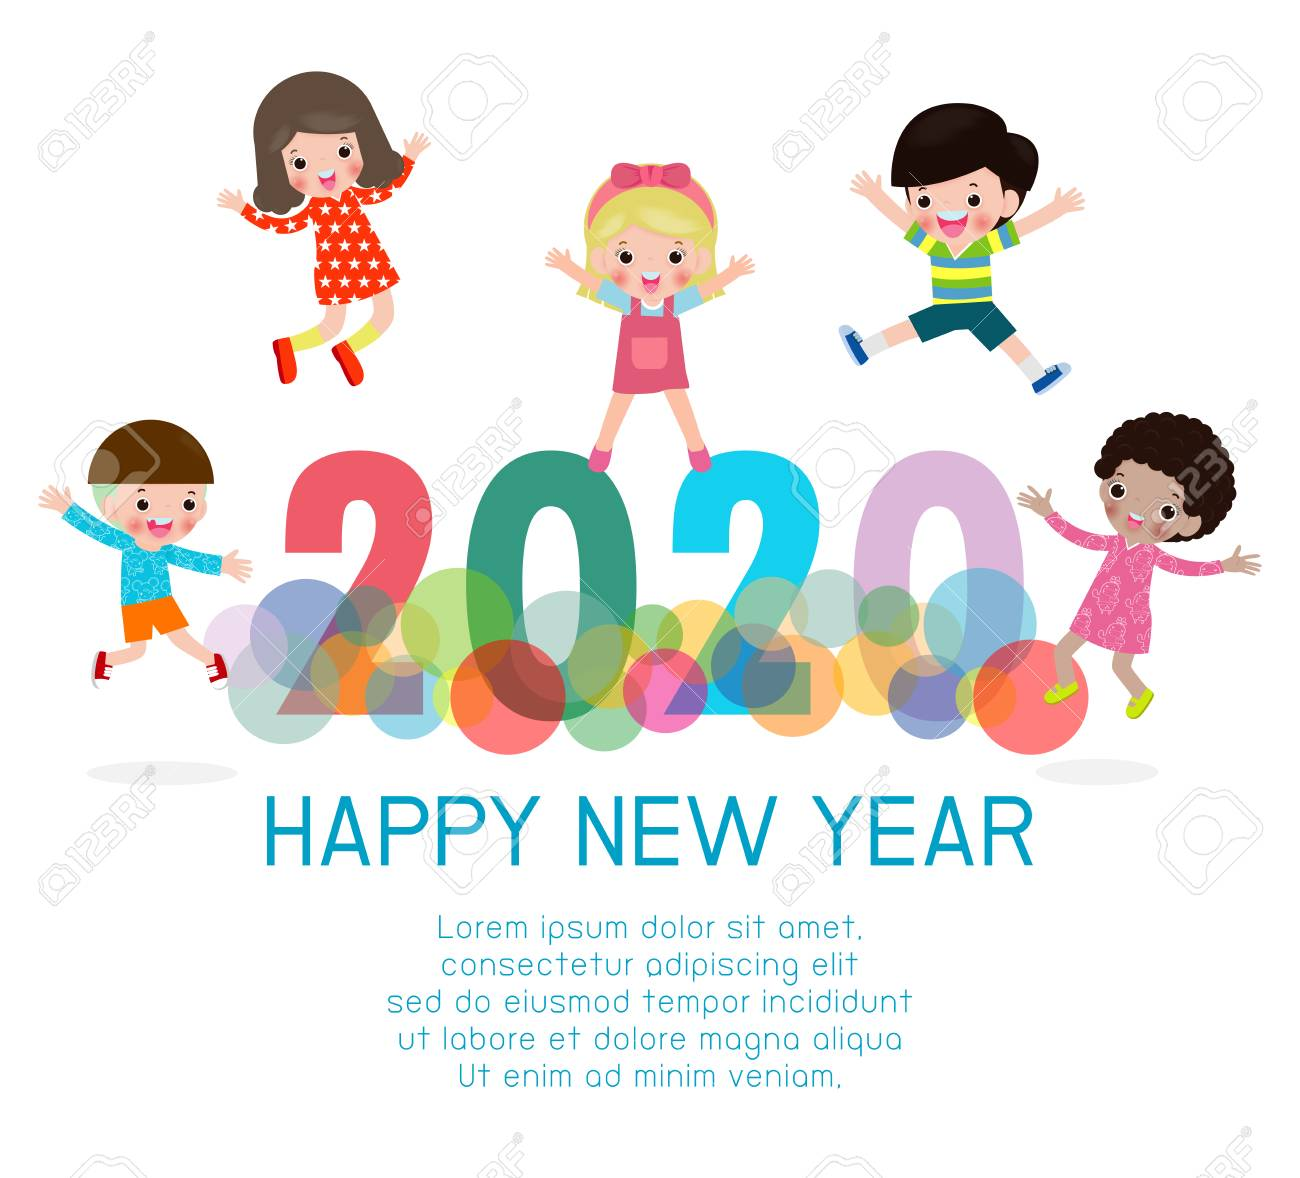 Happy New Year 2015 Clip Art Background